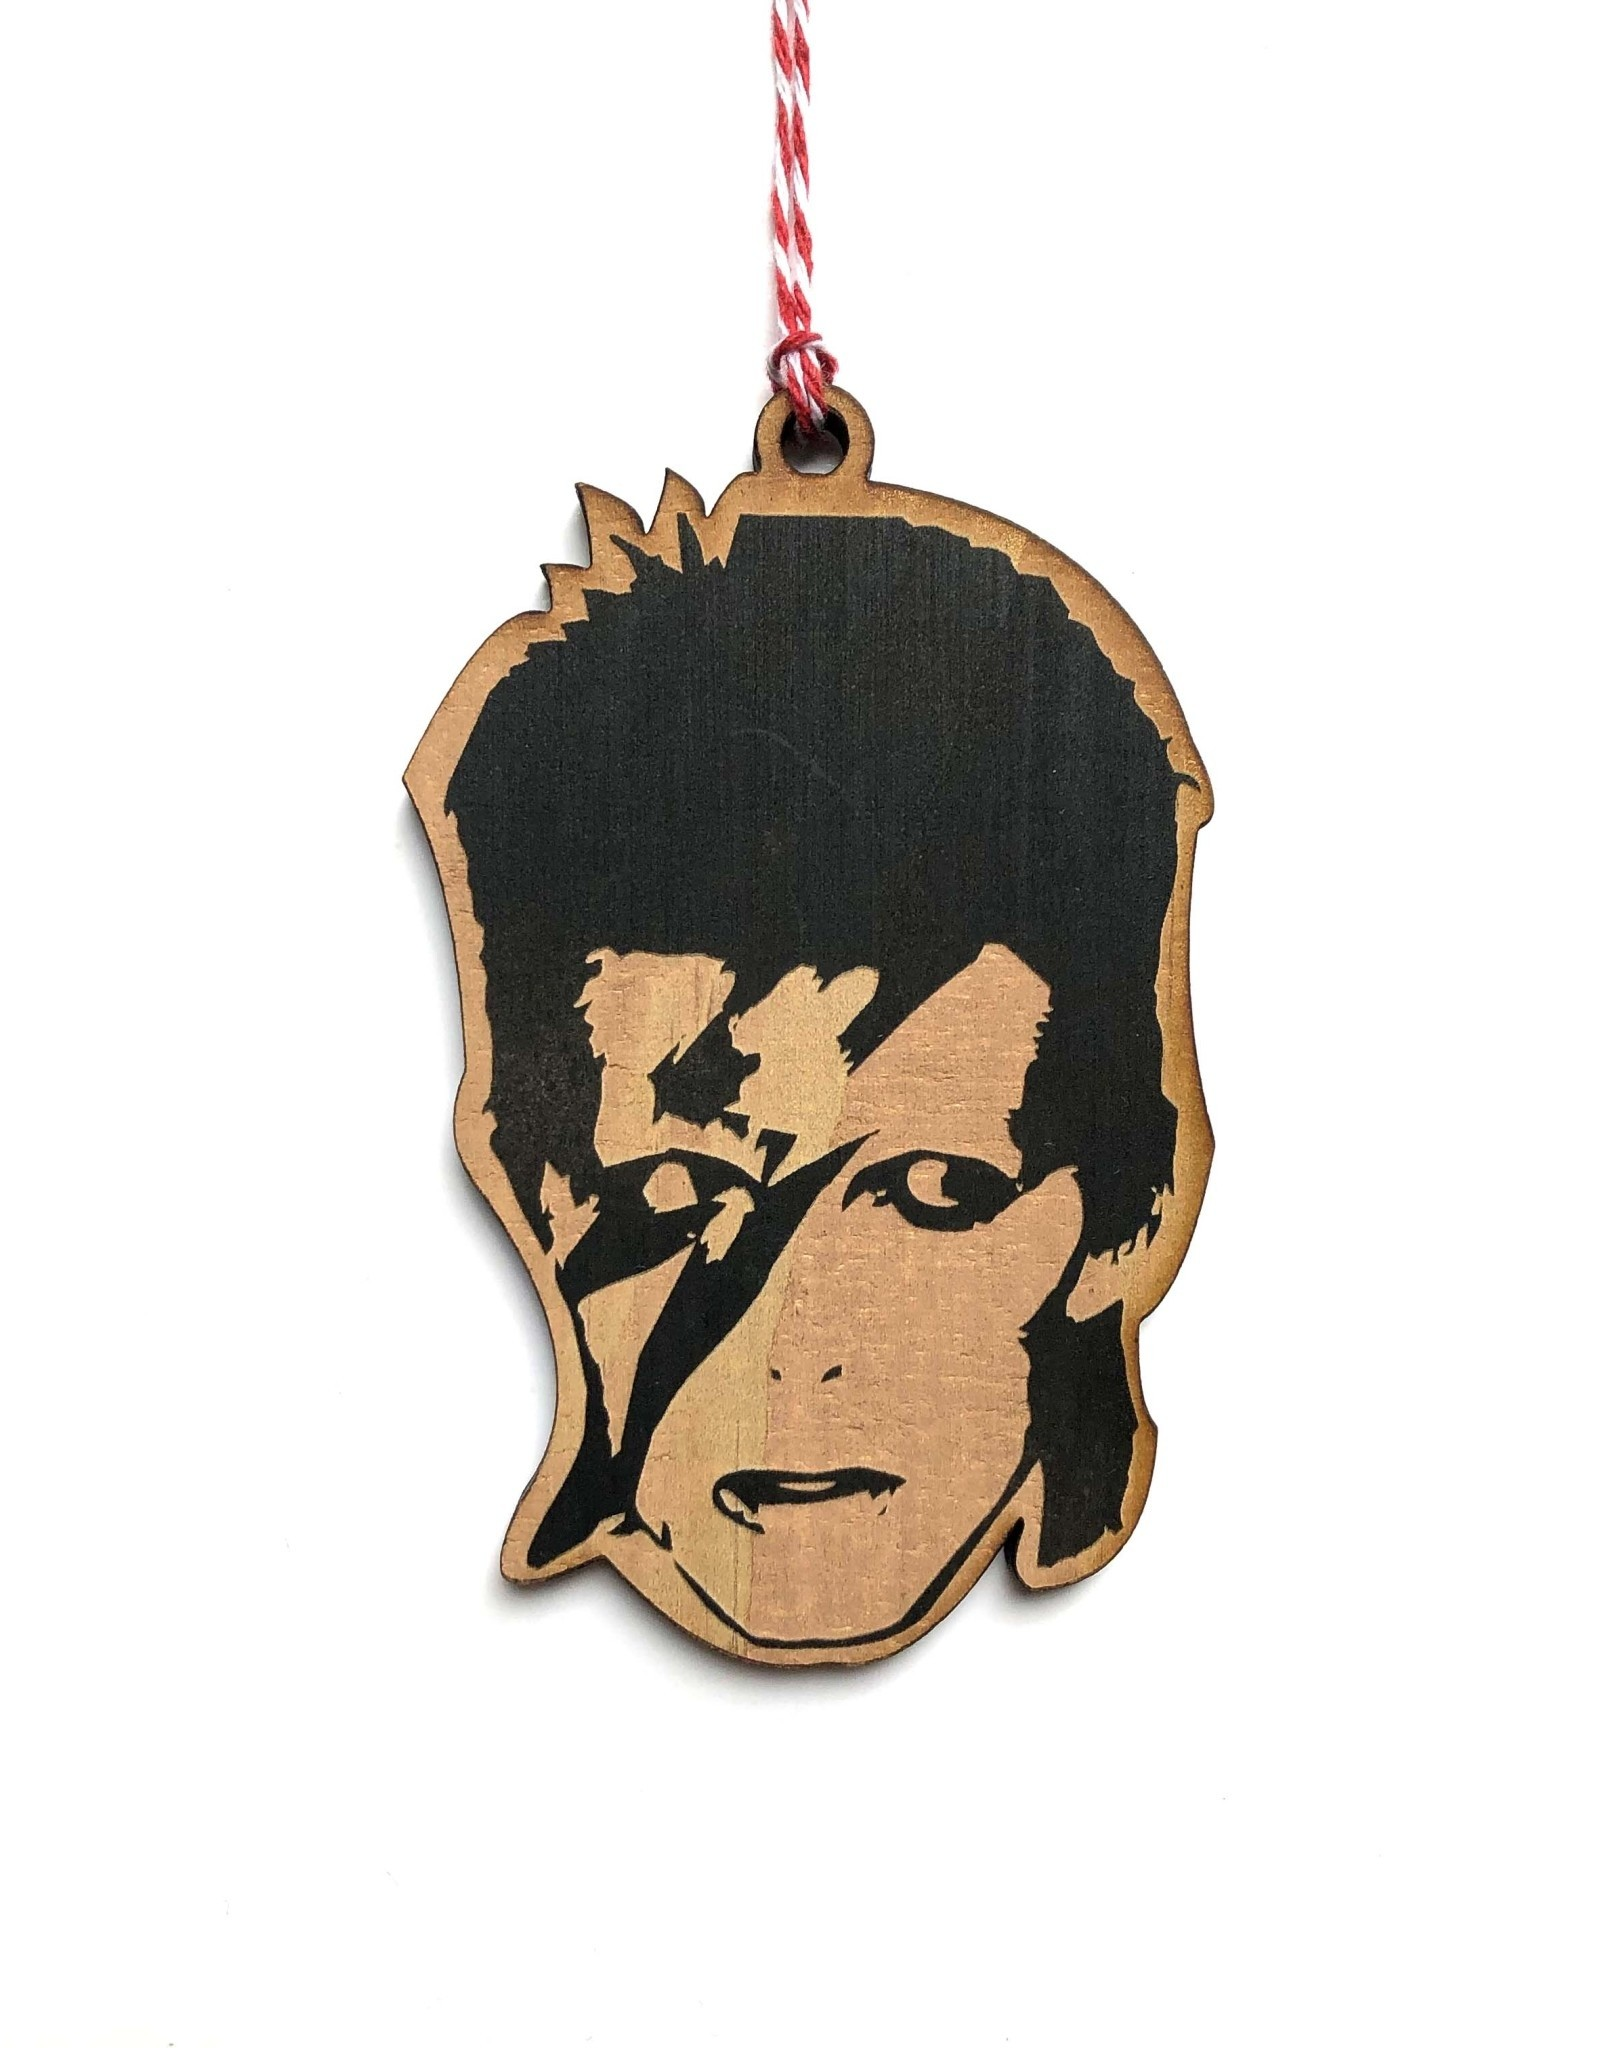 Letter Craft David Bowie Wooden Ornament